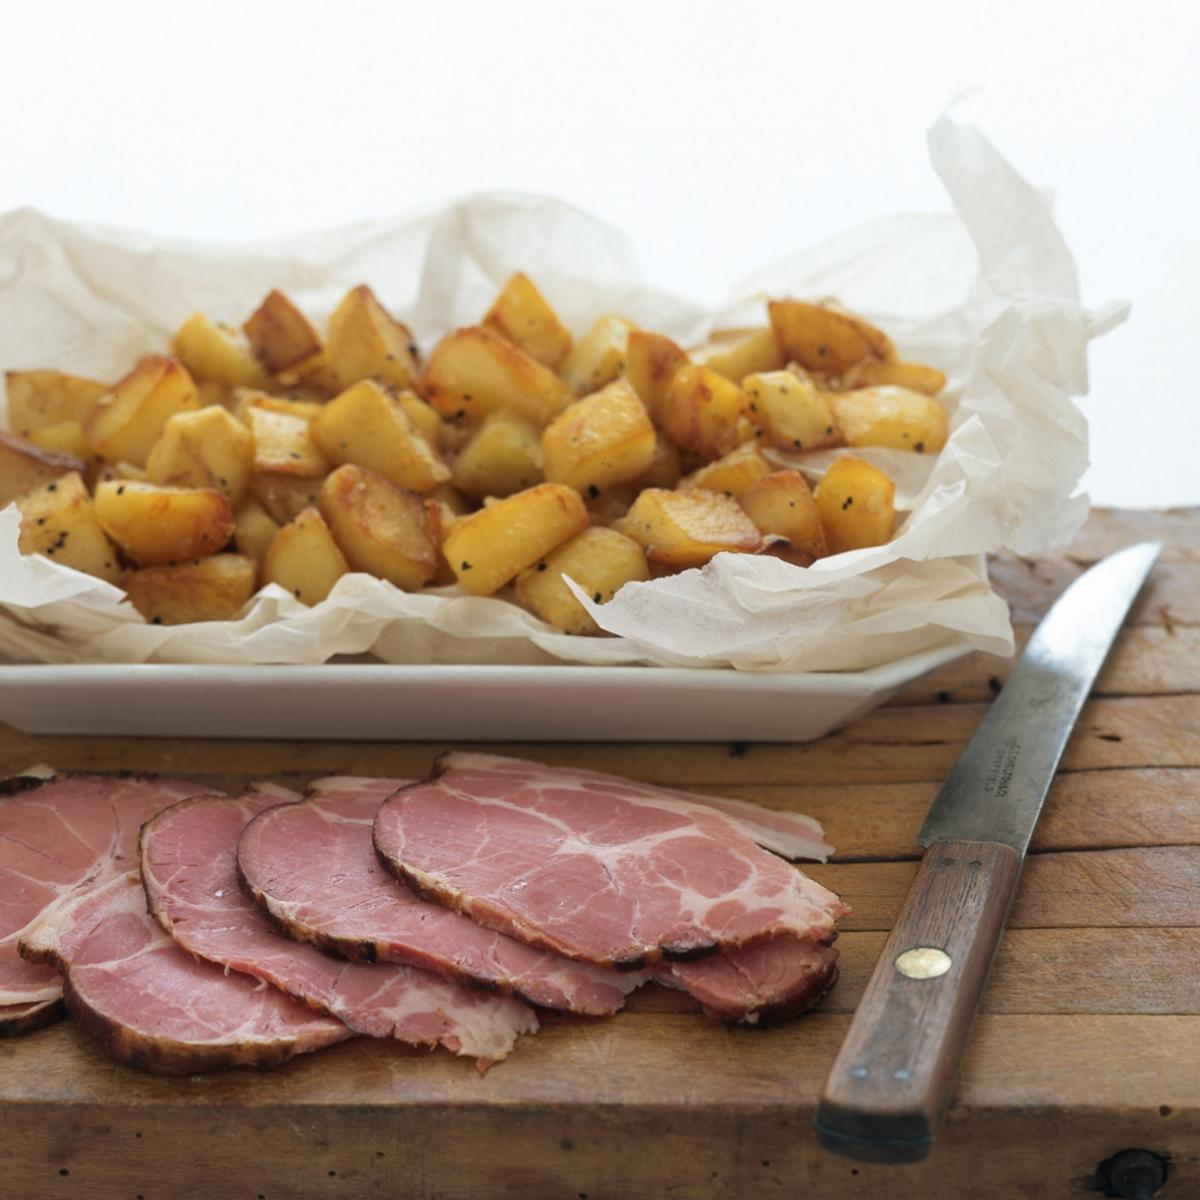 A picture of Delia's Michael's Chunky Sauté Potatoes in Turkey Dripping recipe